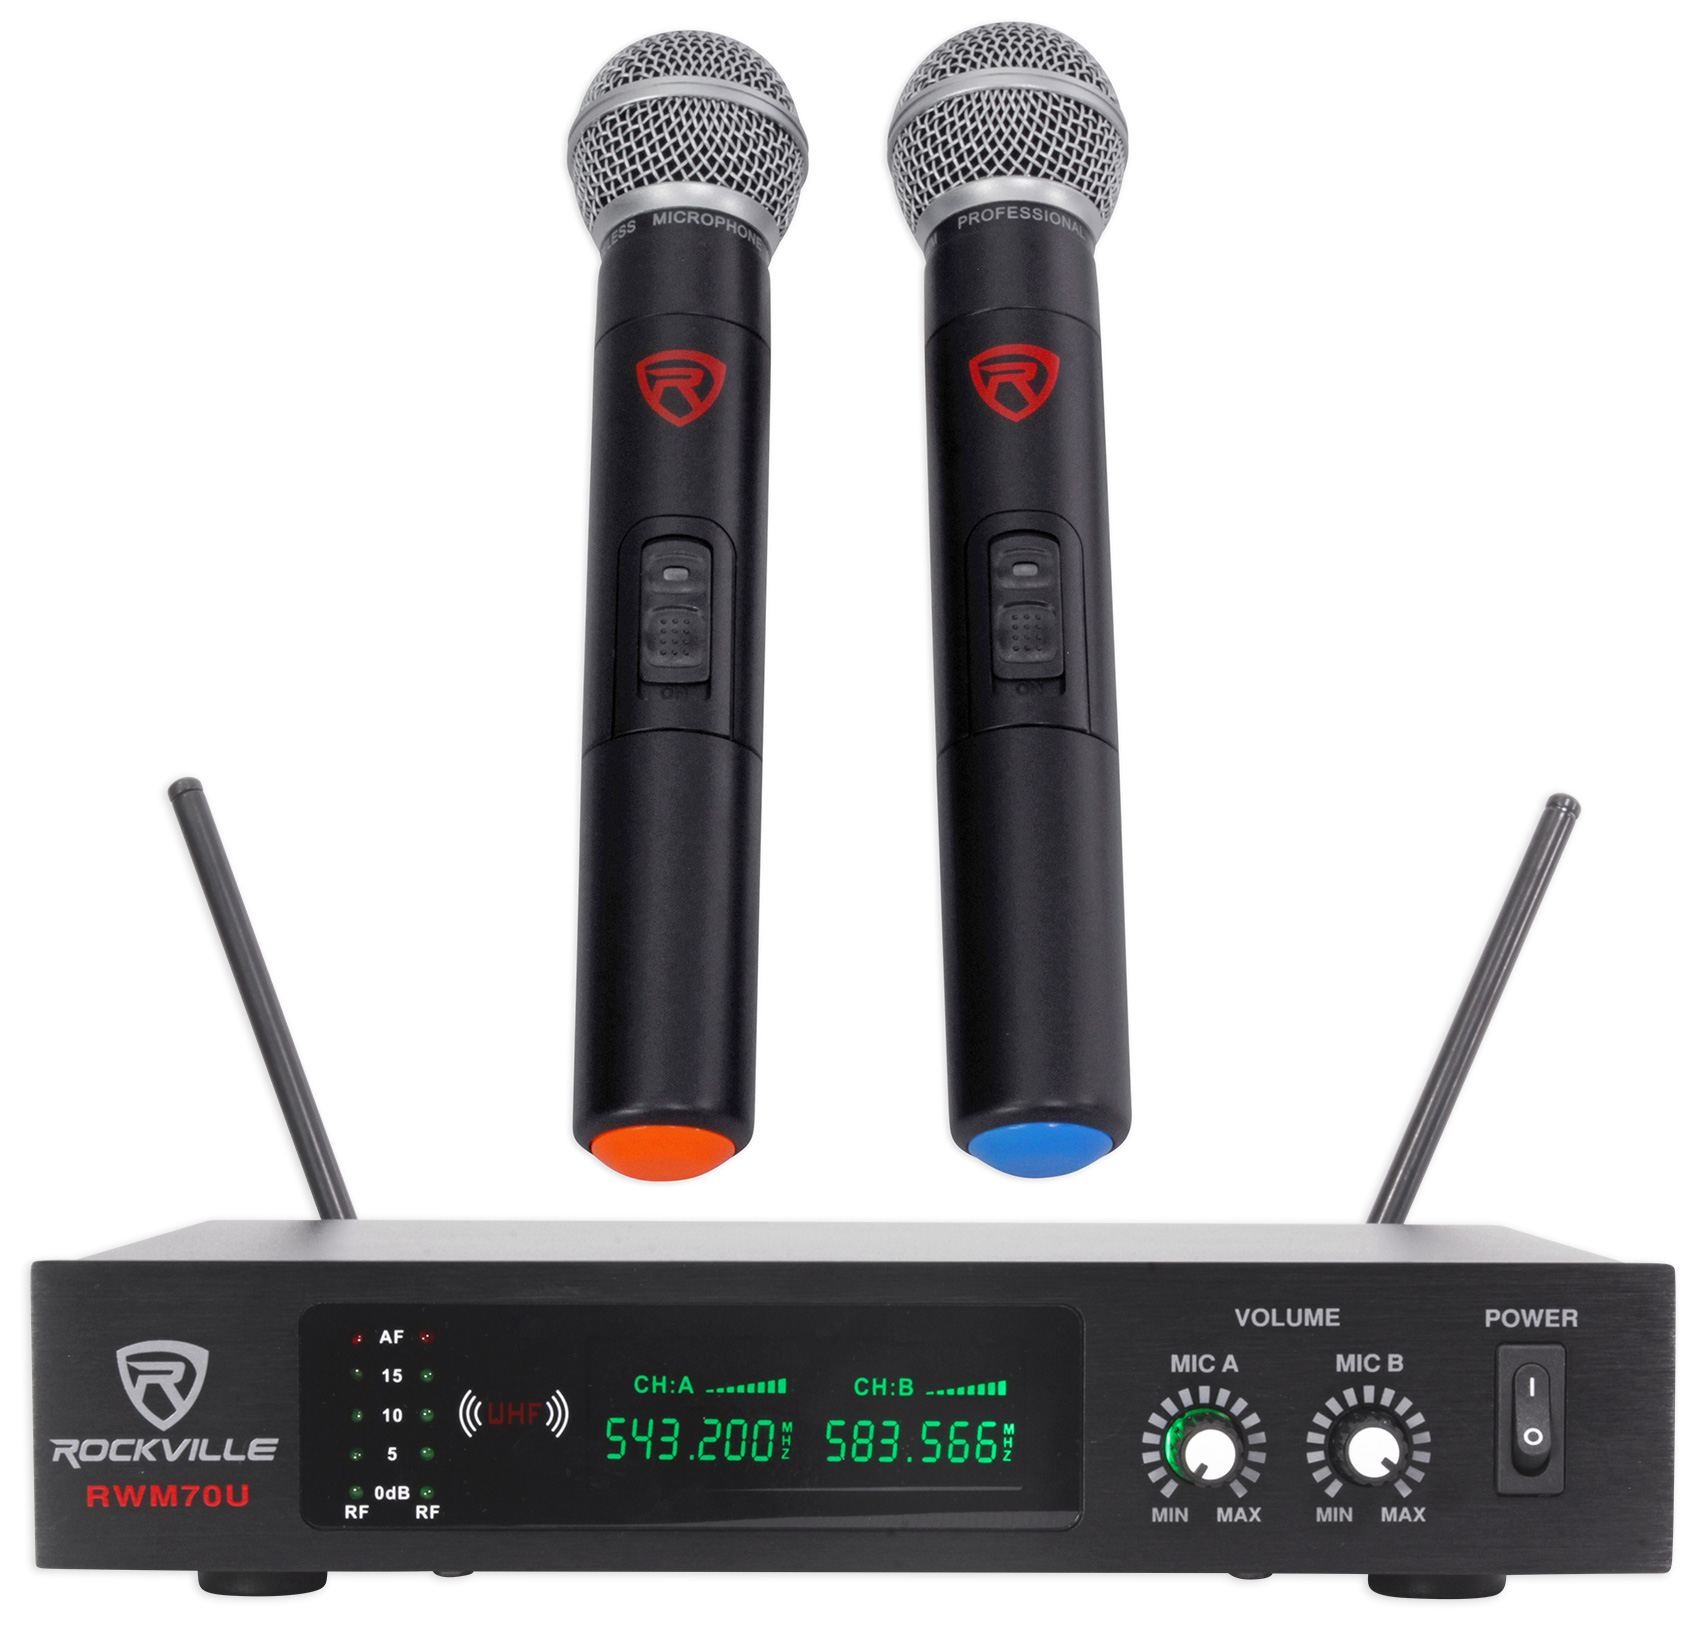 Rockville RWM70U Dual UHF All Metal Handheld Wireless Microphone System w LCD by ROCKVILLE